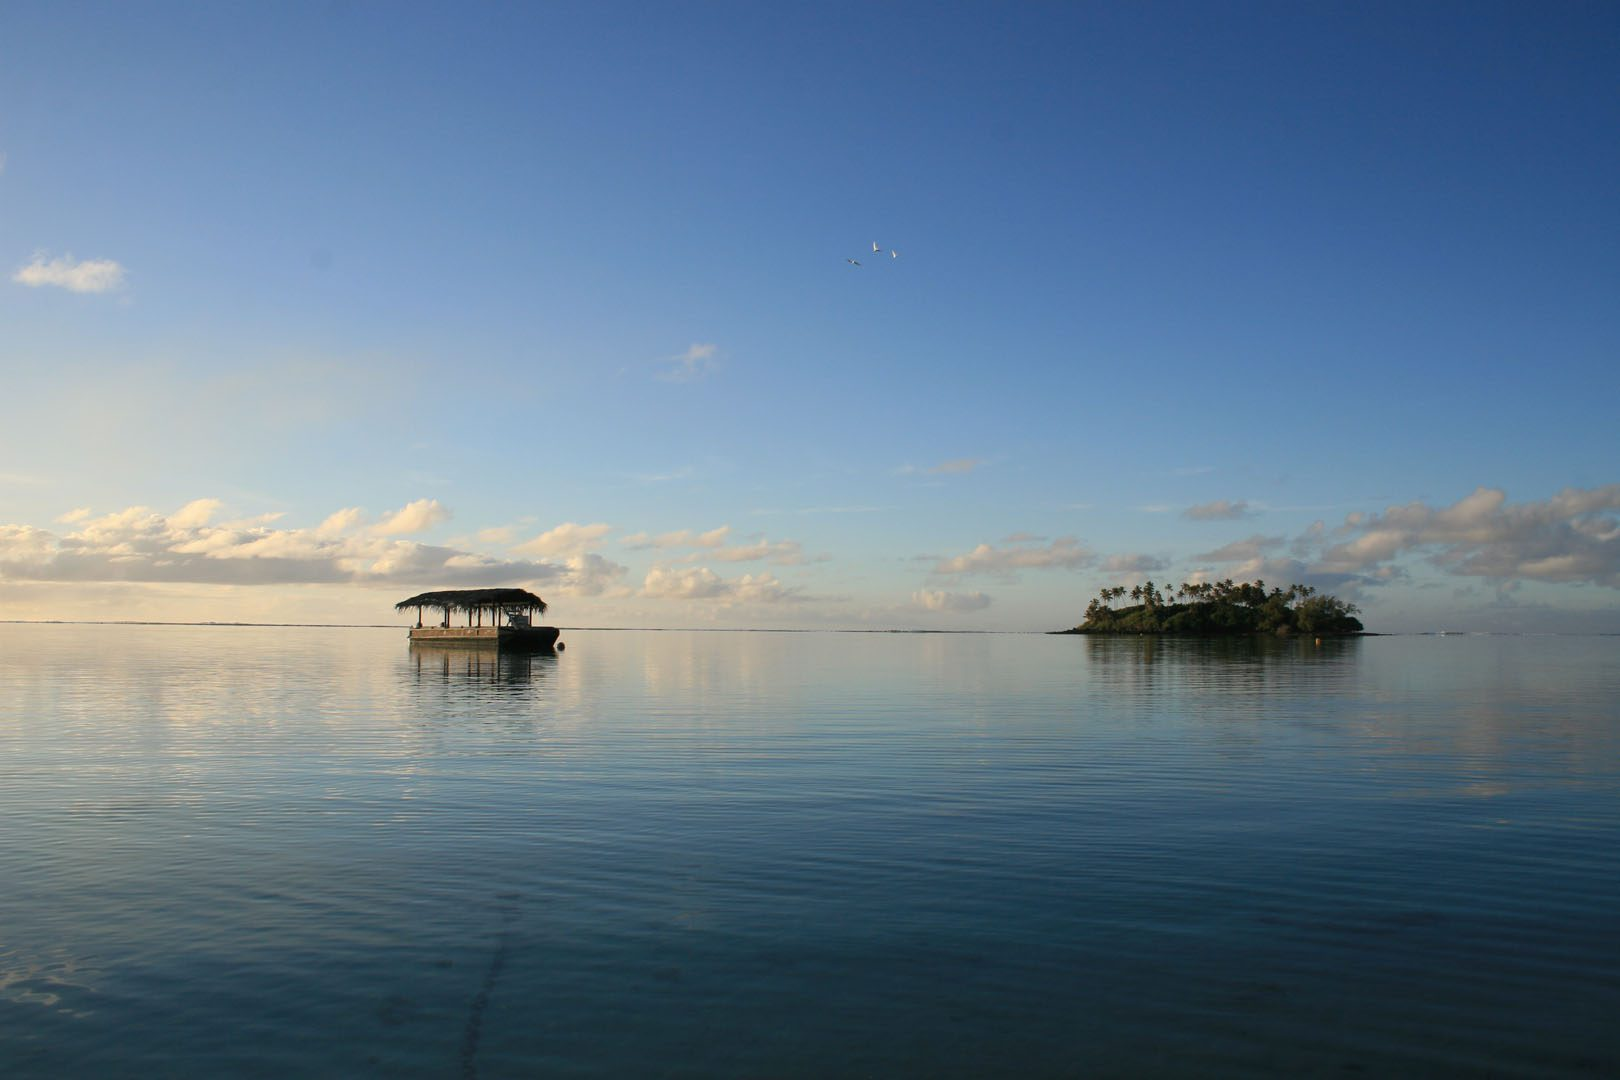 Moana Roa Lagoon Cruiser births in the Muri Lagoon featuring calm waters and a clear blue sky filled with three white lagoon birds